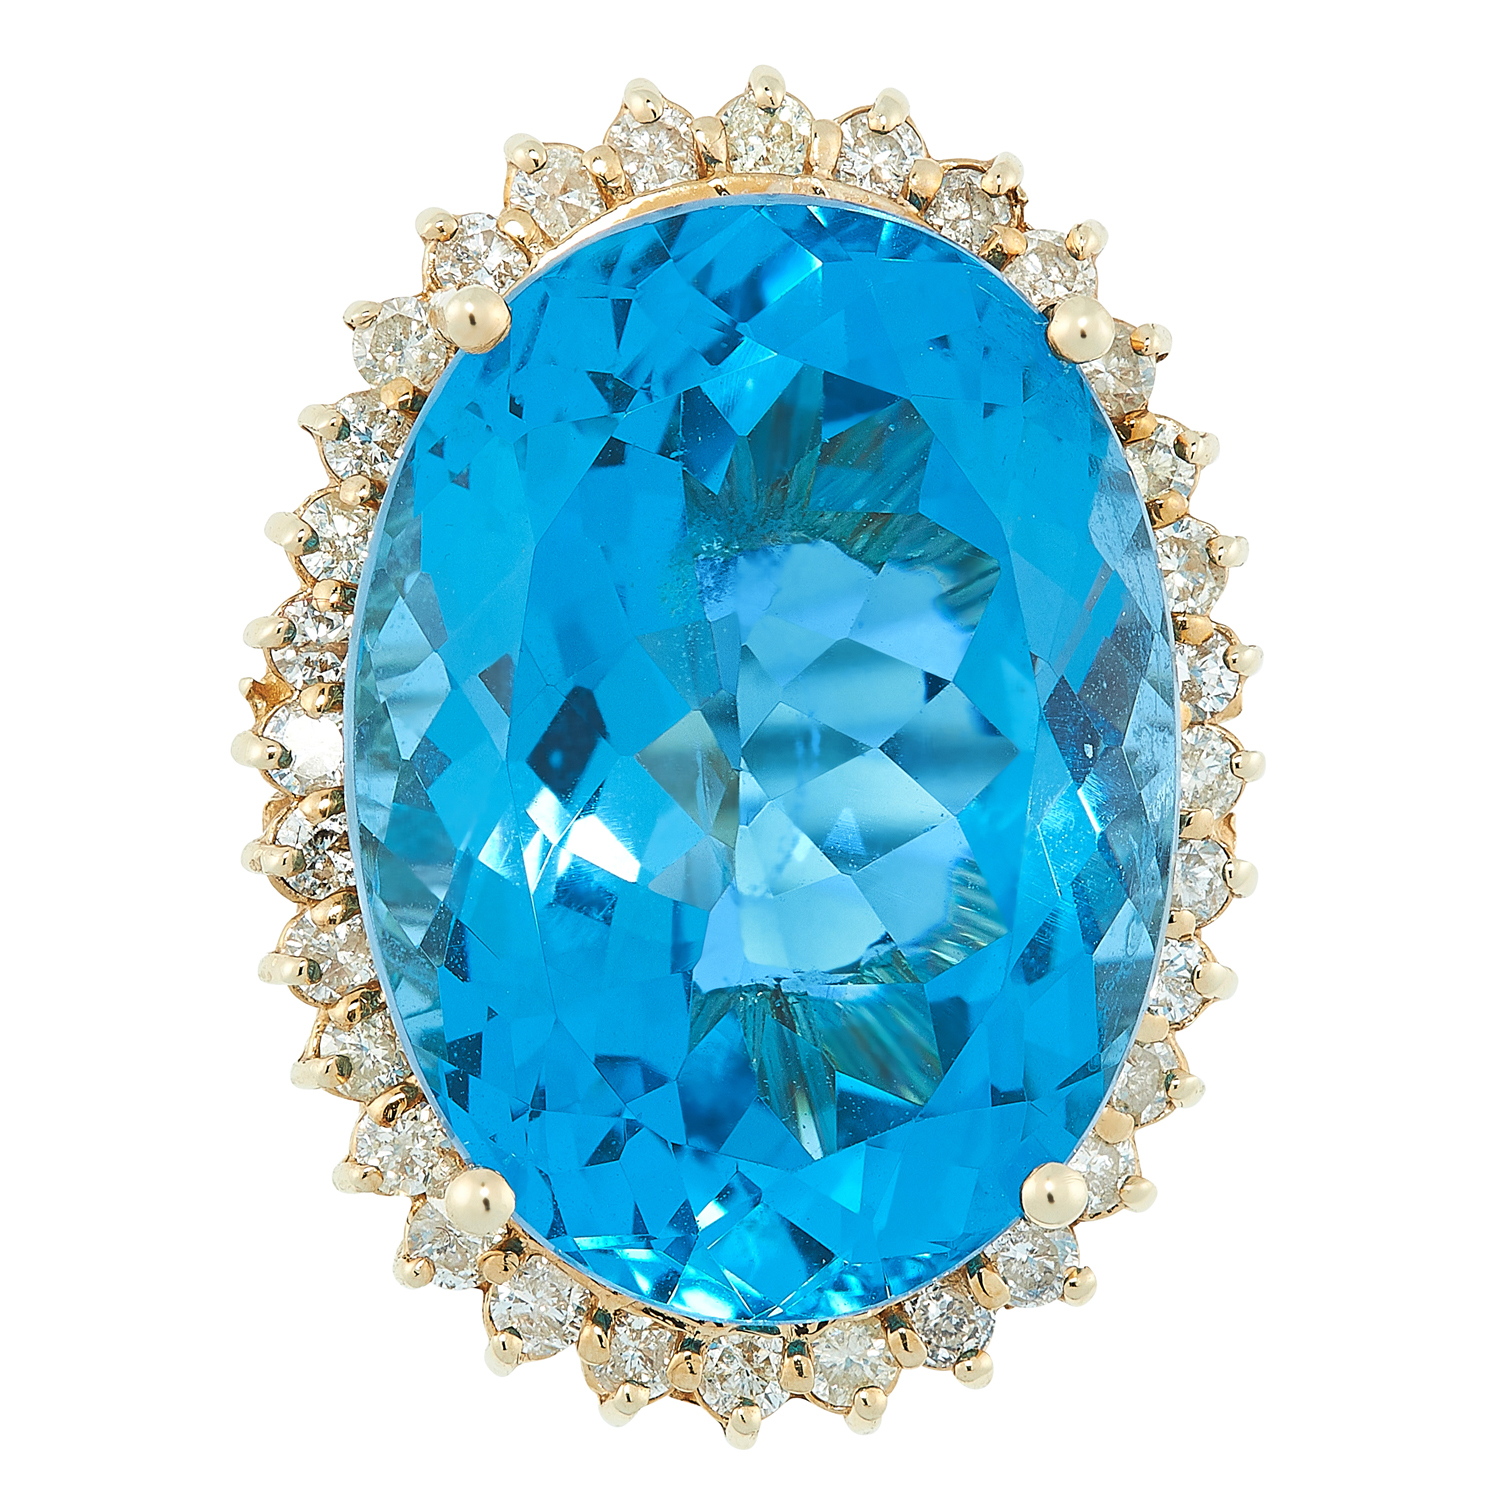 A TOPAZ AND DIAMOND CLUSTER RING set with an oval cut topaz of 27.8 carats, in a border of round cut